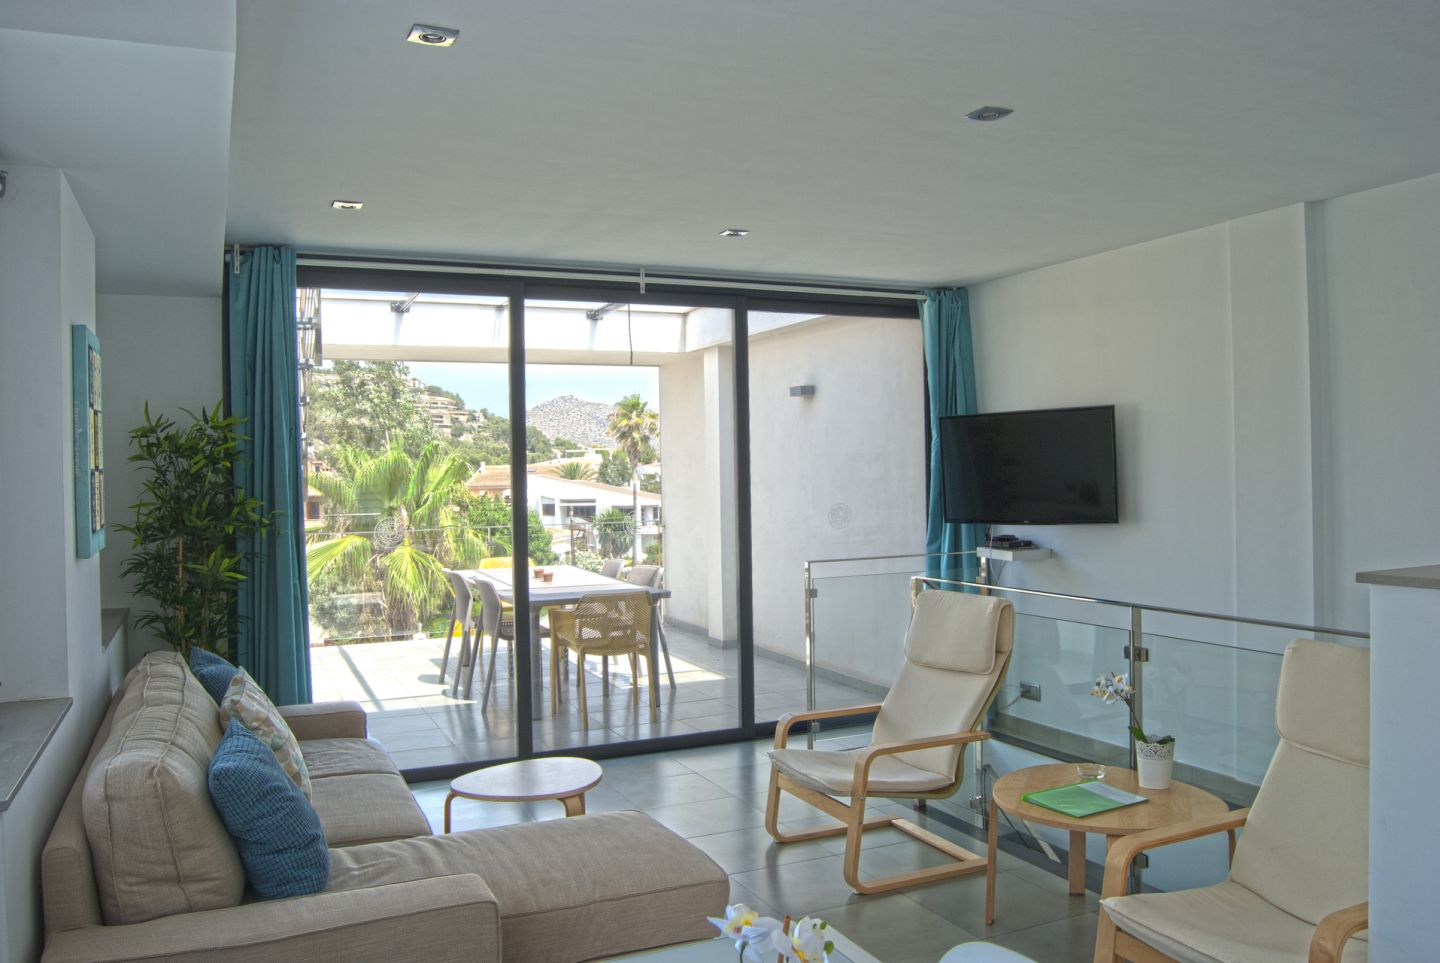 3 Bed Duplex for sale in PUERTO POLLENSA 1